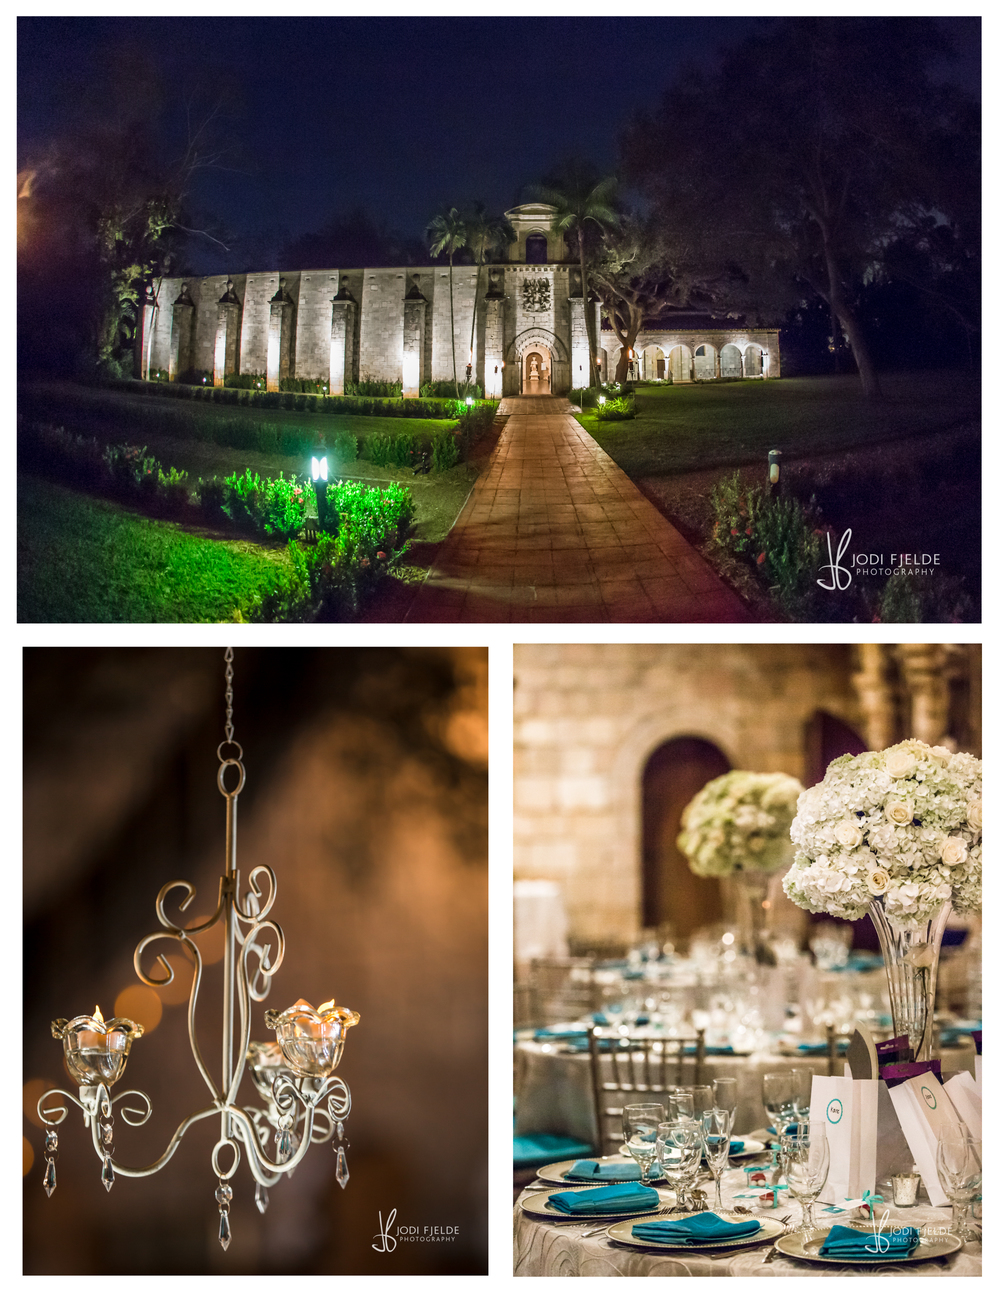 Ancient_Spanish_Monastery_Miami_Florida_wedding_Gio_Iggy_Jodi_Fjelde_Photography_14.jpg